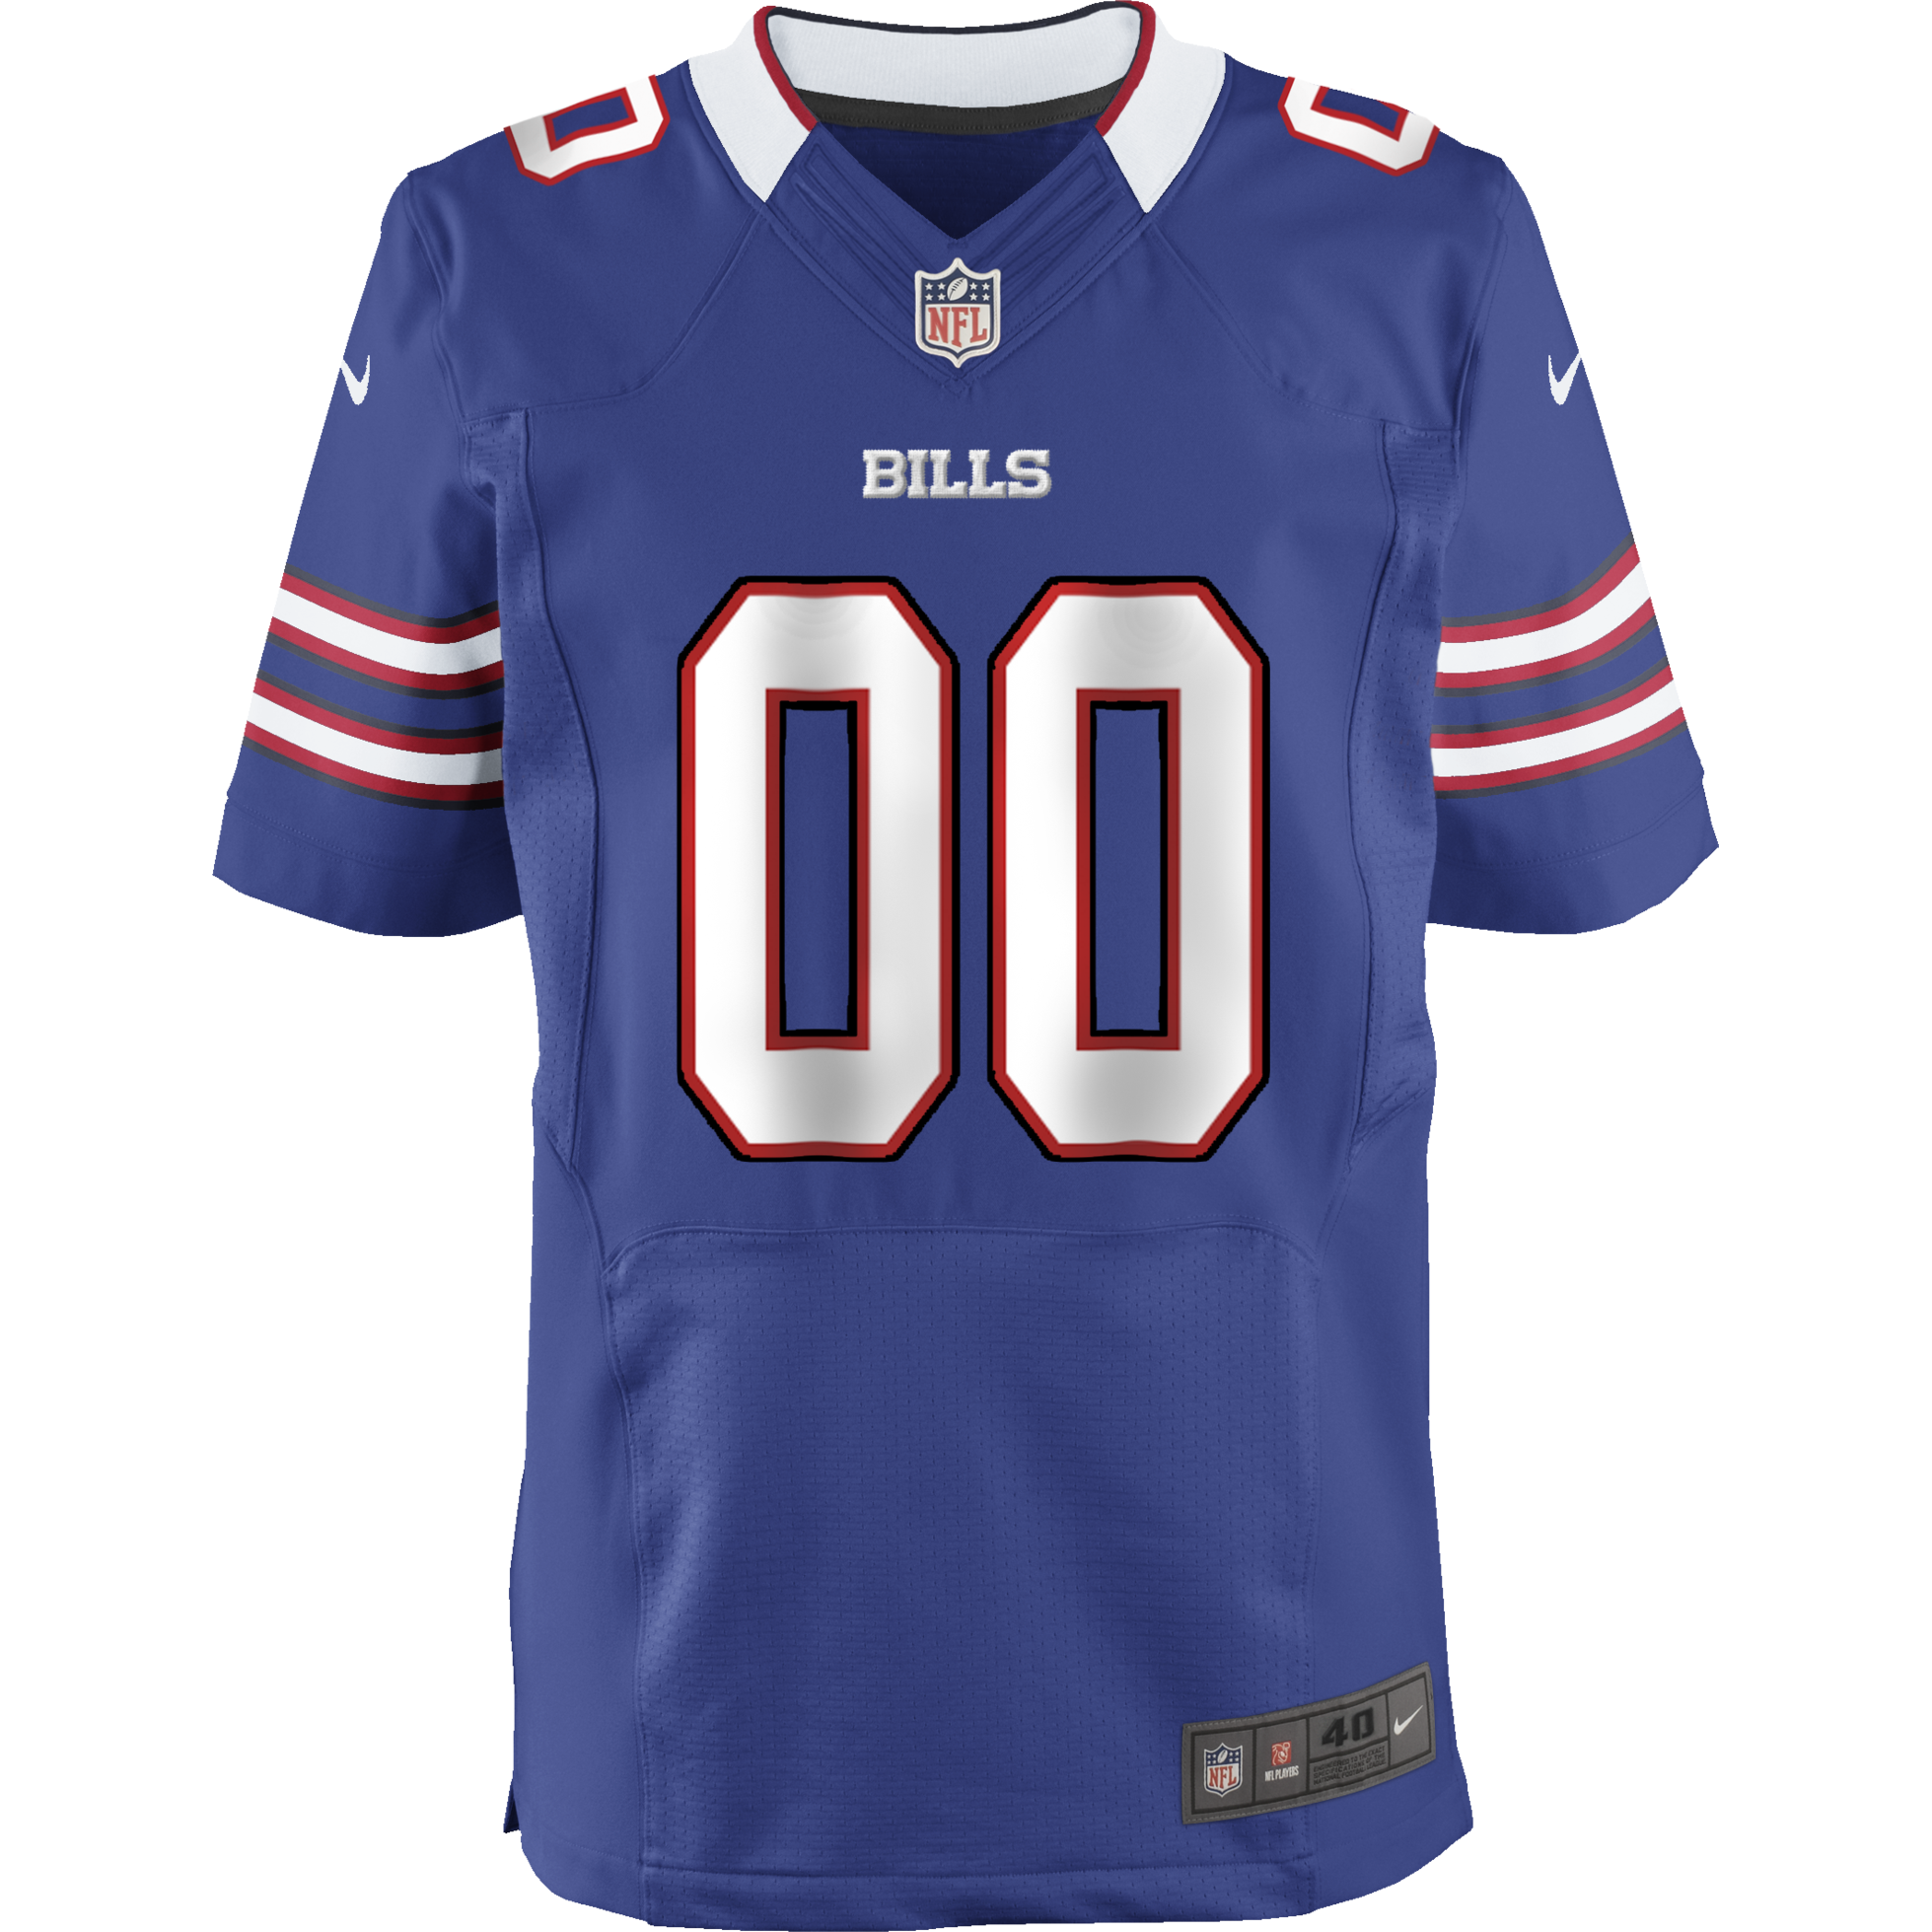 Bills Youth Jersey: Custom Home Game NFL Jersey – Shop One Buffalo